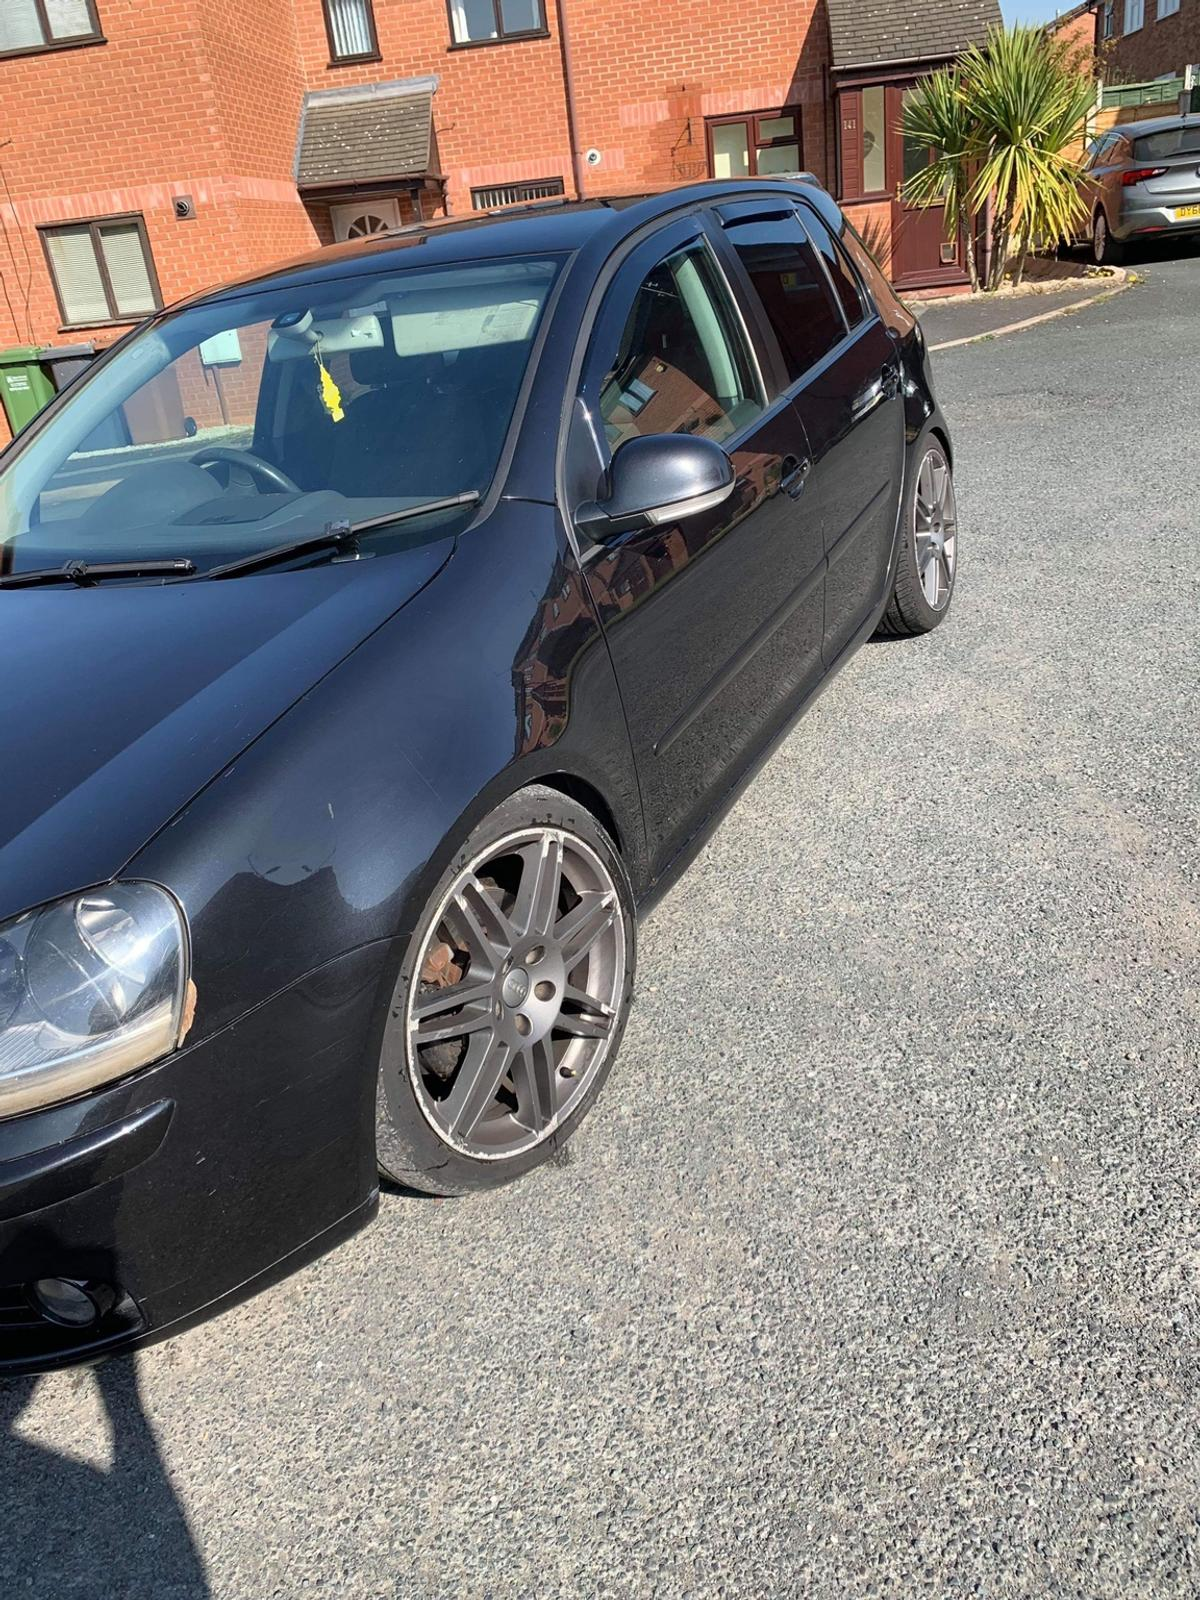 Mk5 vw golf GT TDI 2 0 in DY10 Wyre Forest for £975 00 for sale - Shpock